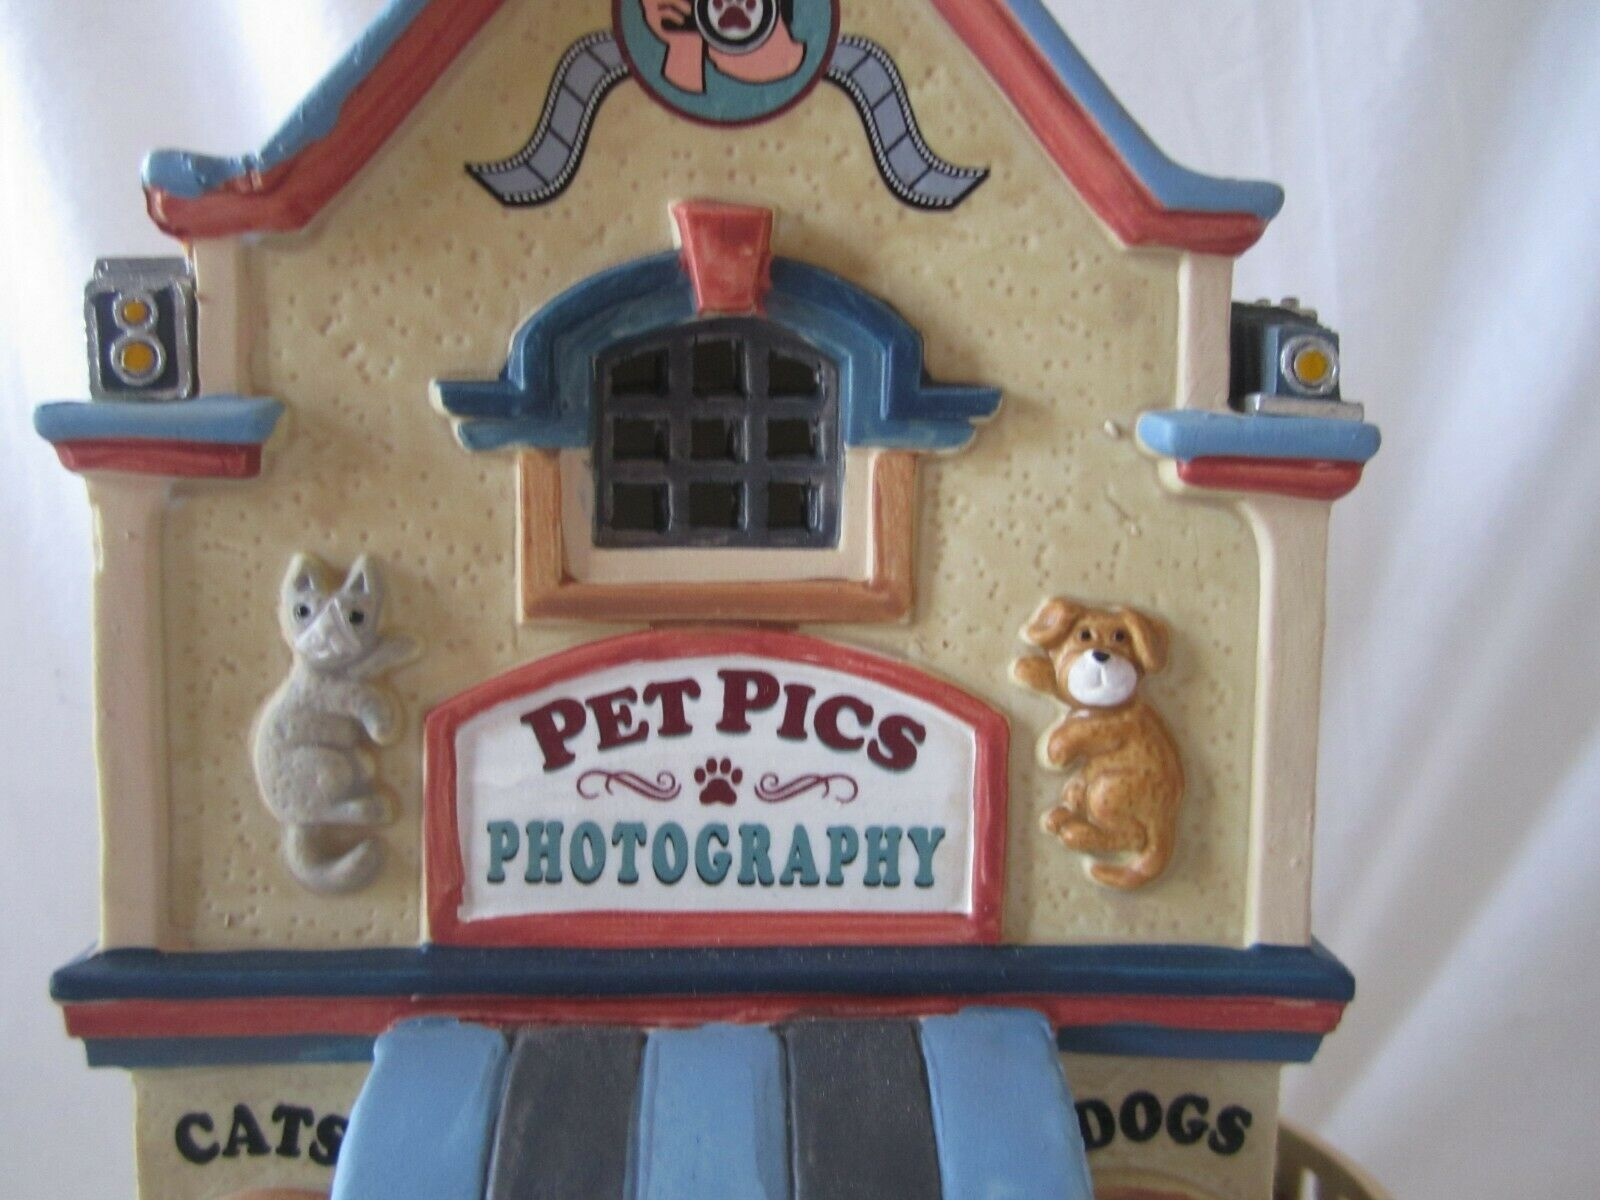 Lemax Christmas Village PET PICS PHOTOGRAPHY  85391 @2018 NEW NEW NEW Store Exclusive 1edc10